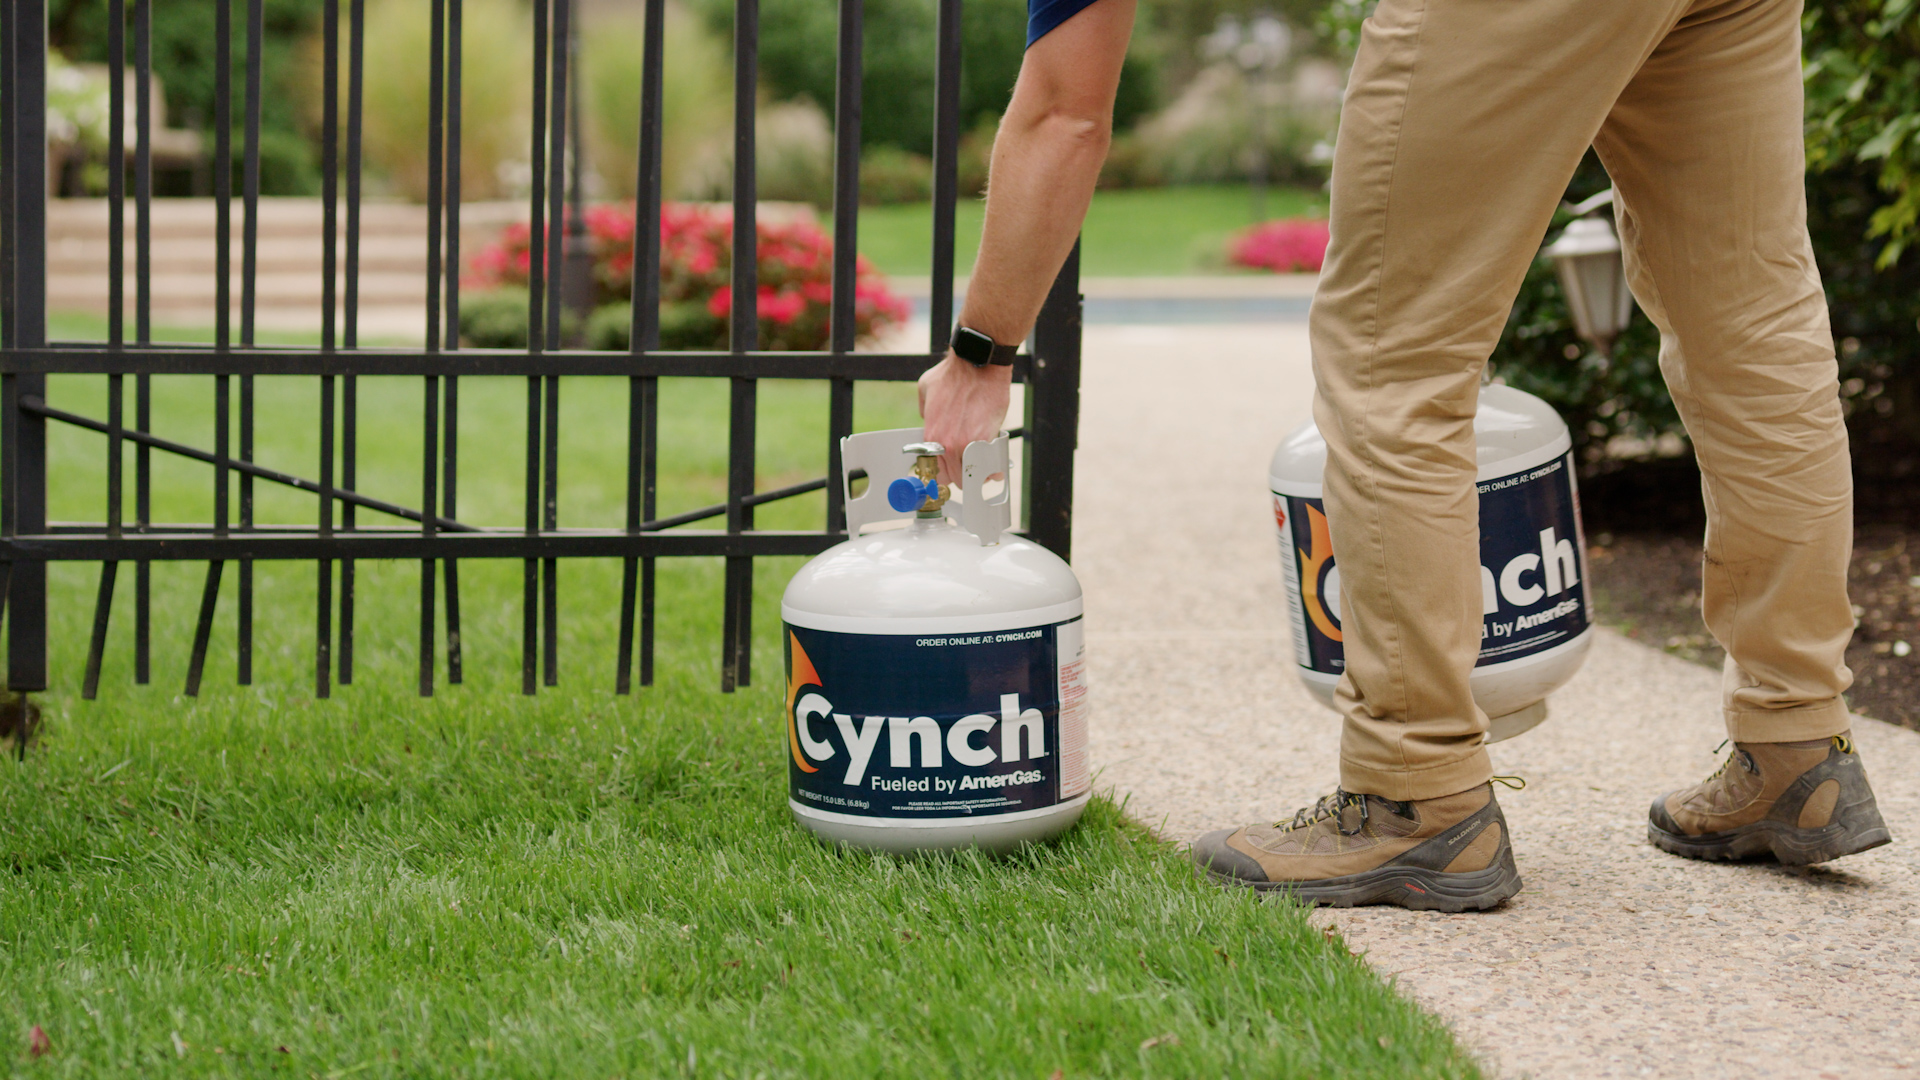 Person picking up Cynch branded portable propane tank